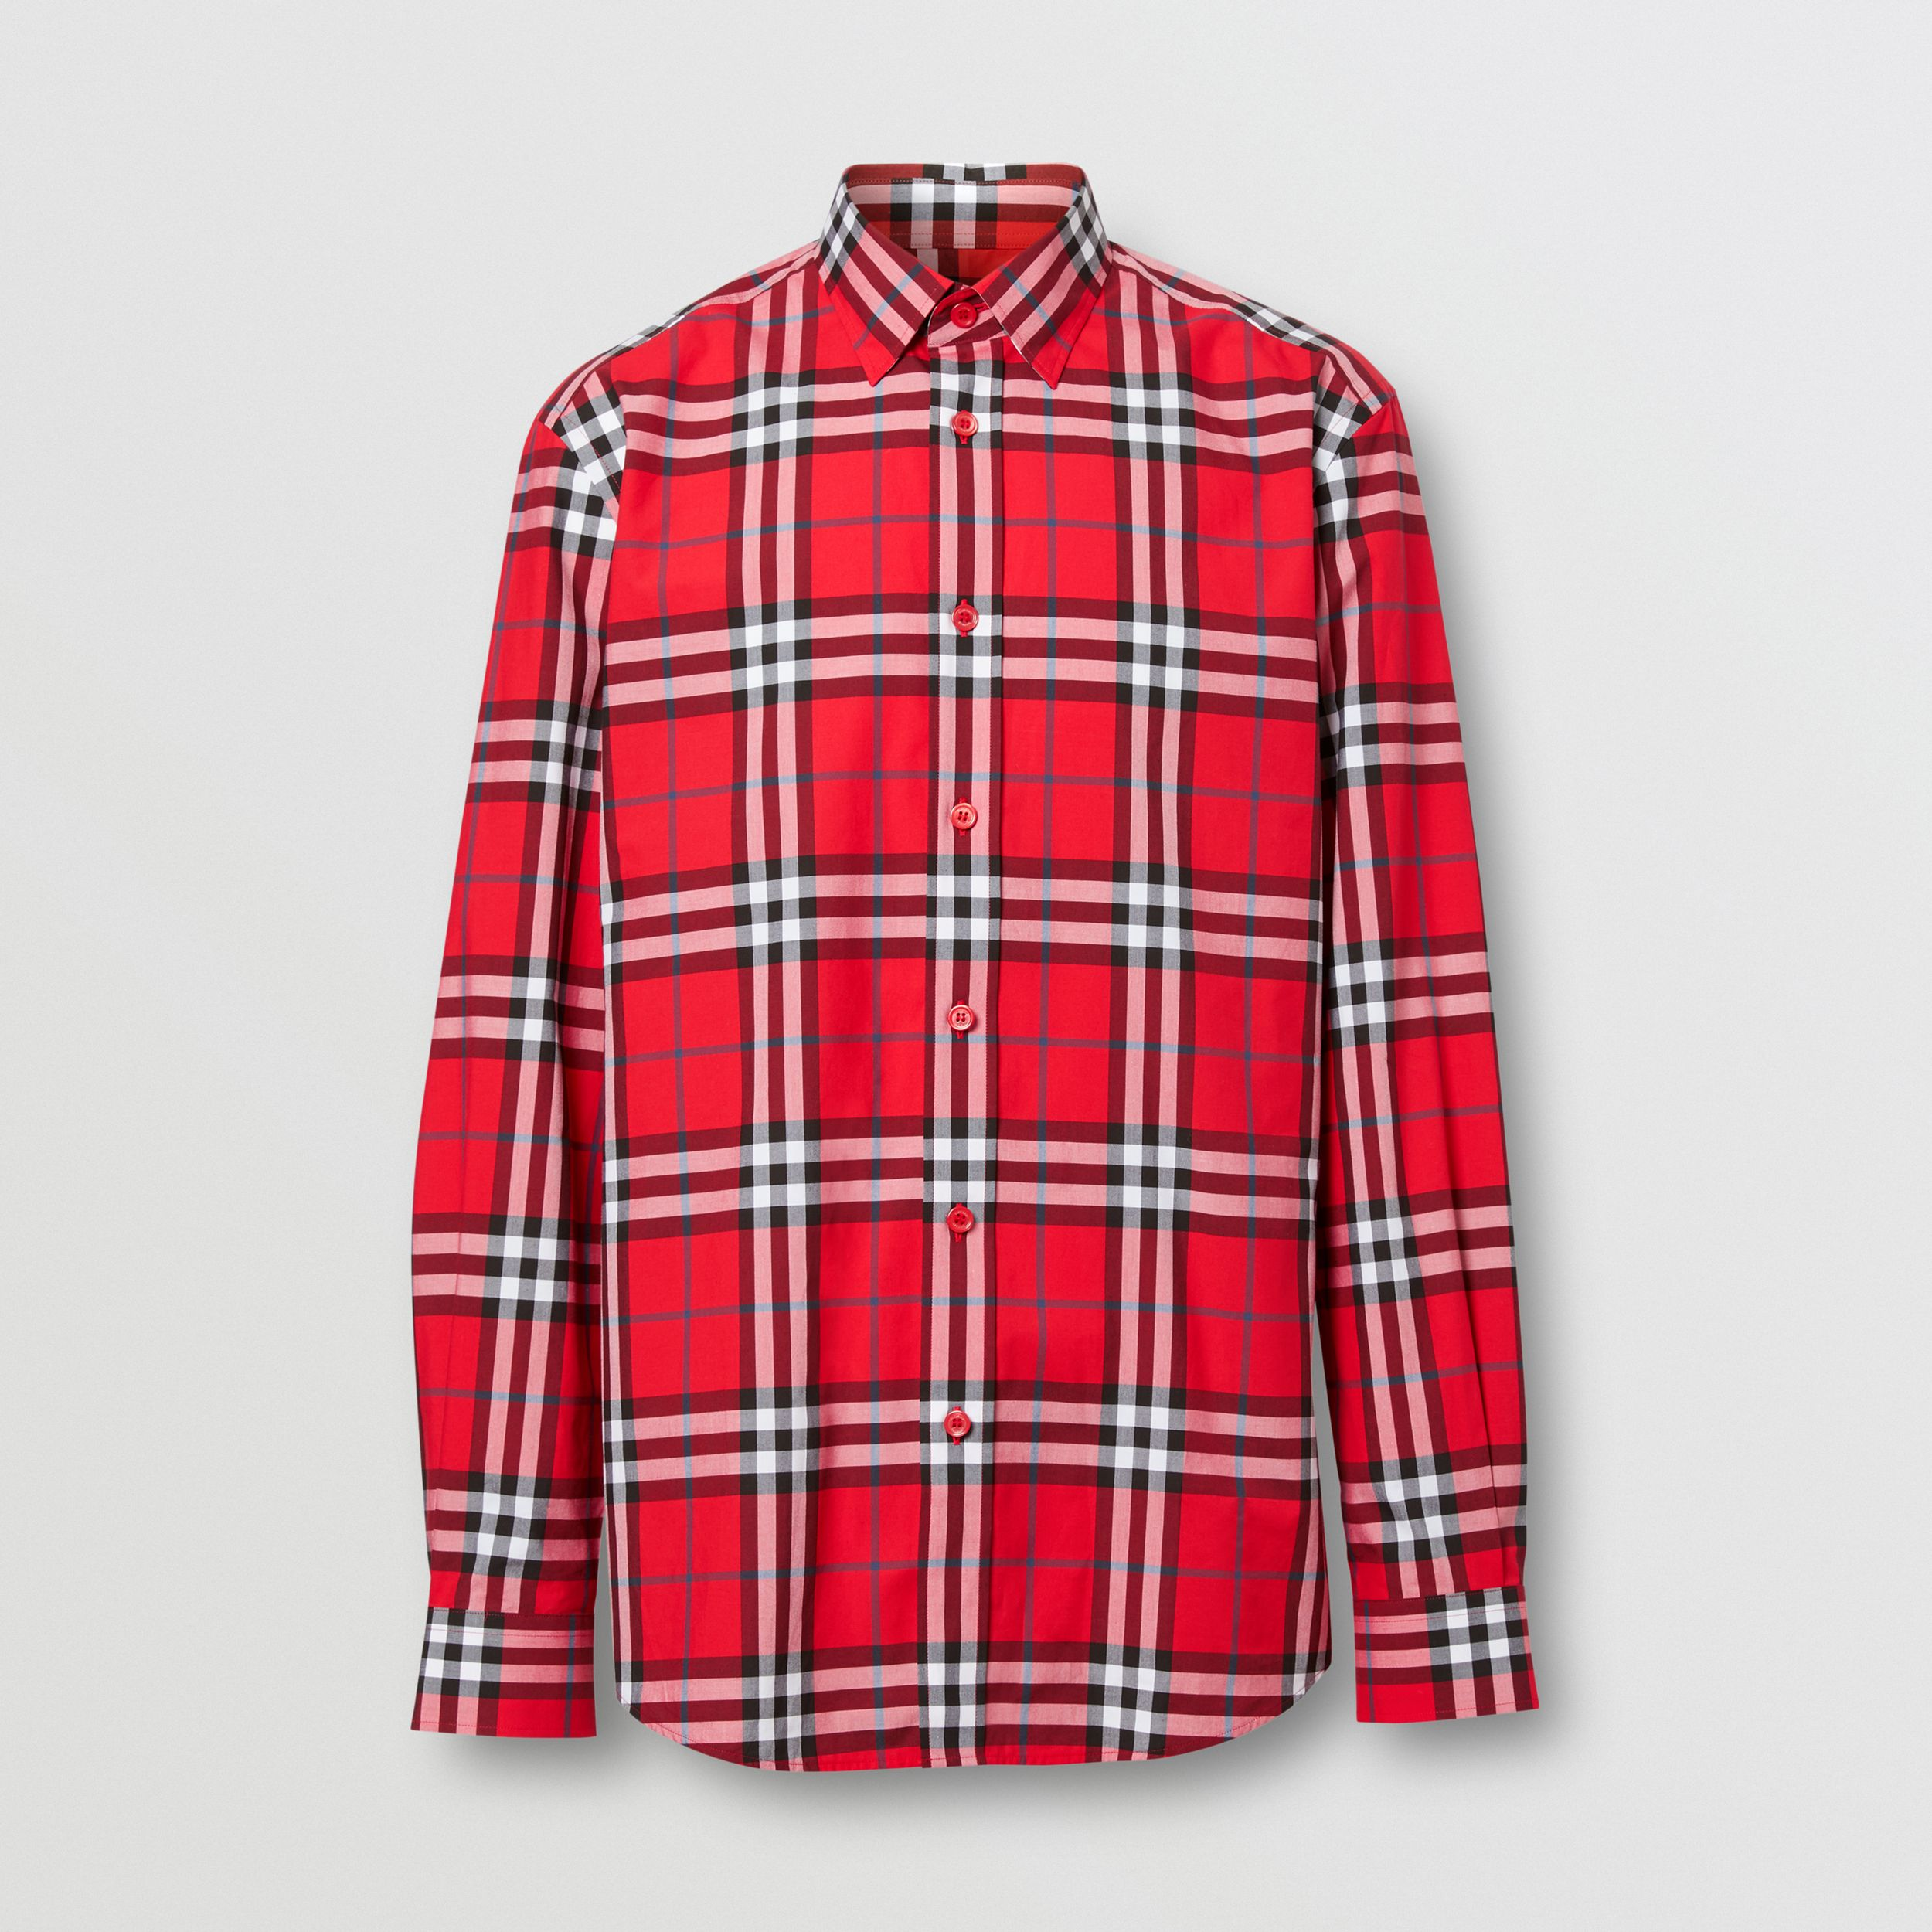 Check Cotton Poplin Shirt in Bright Red - Men | Burberry - 4